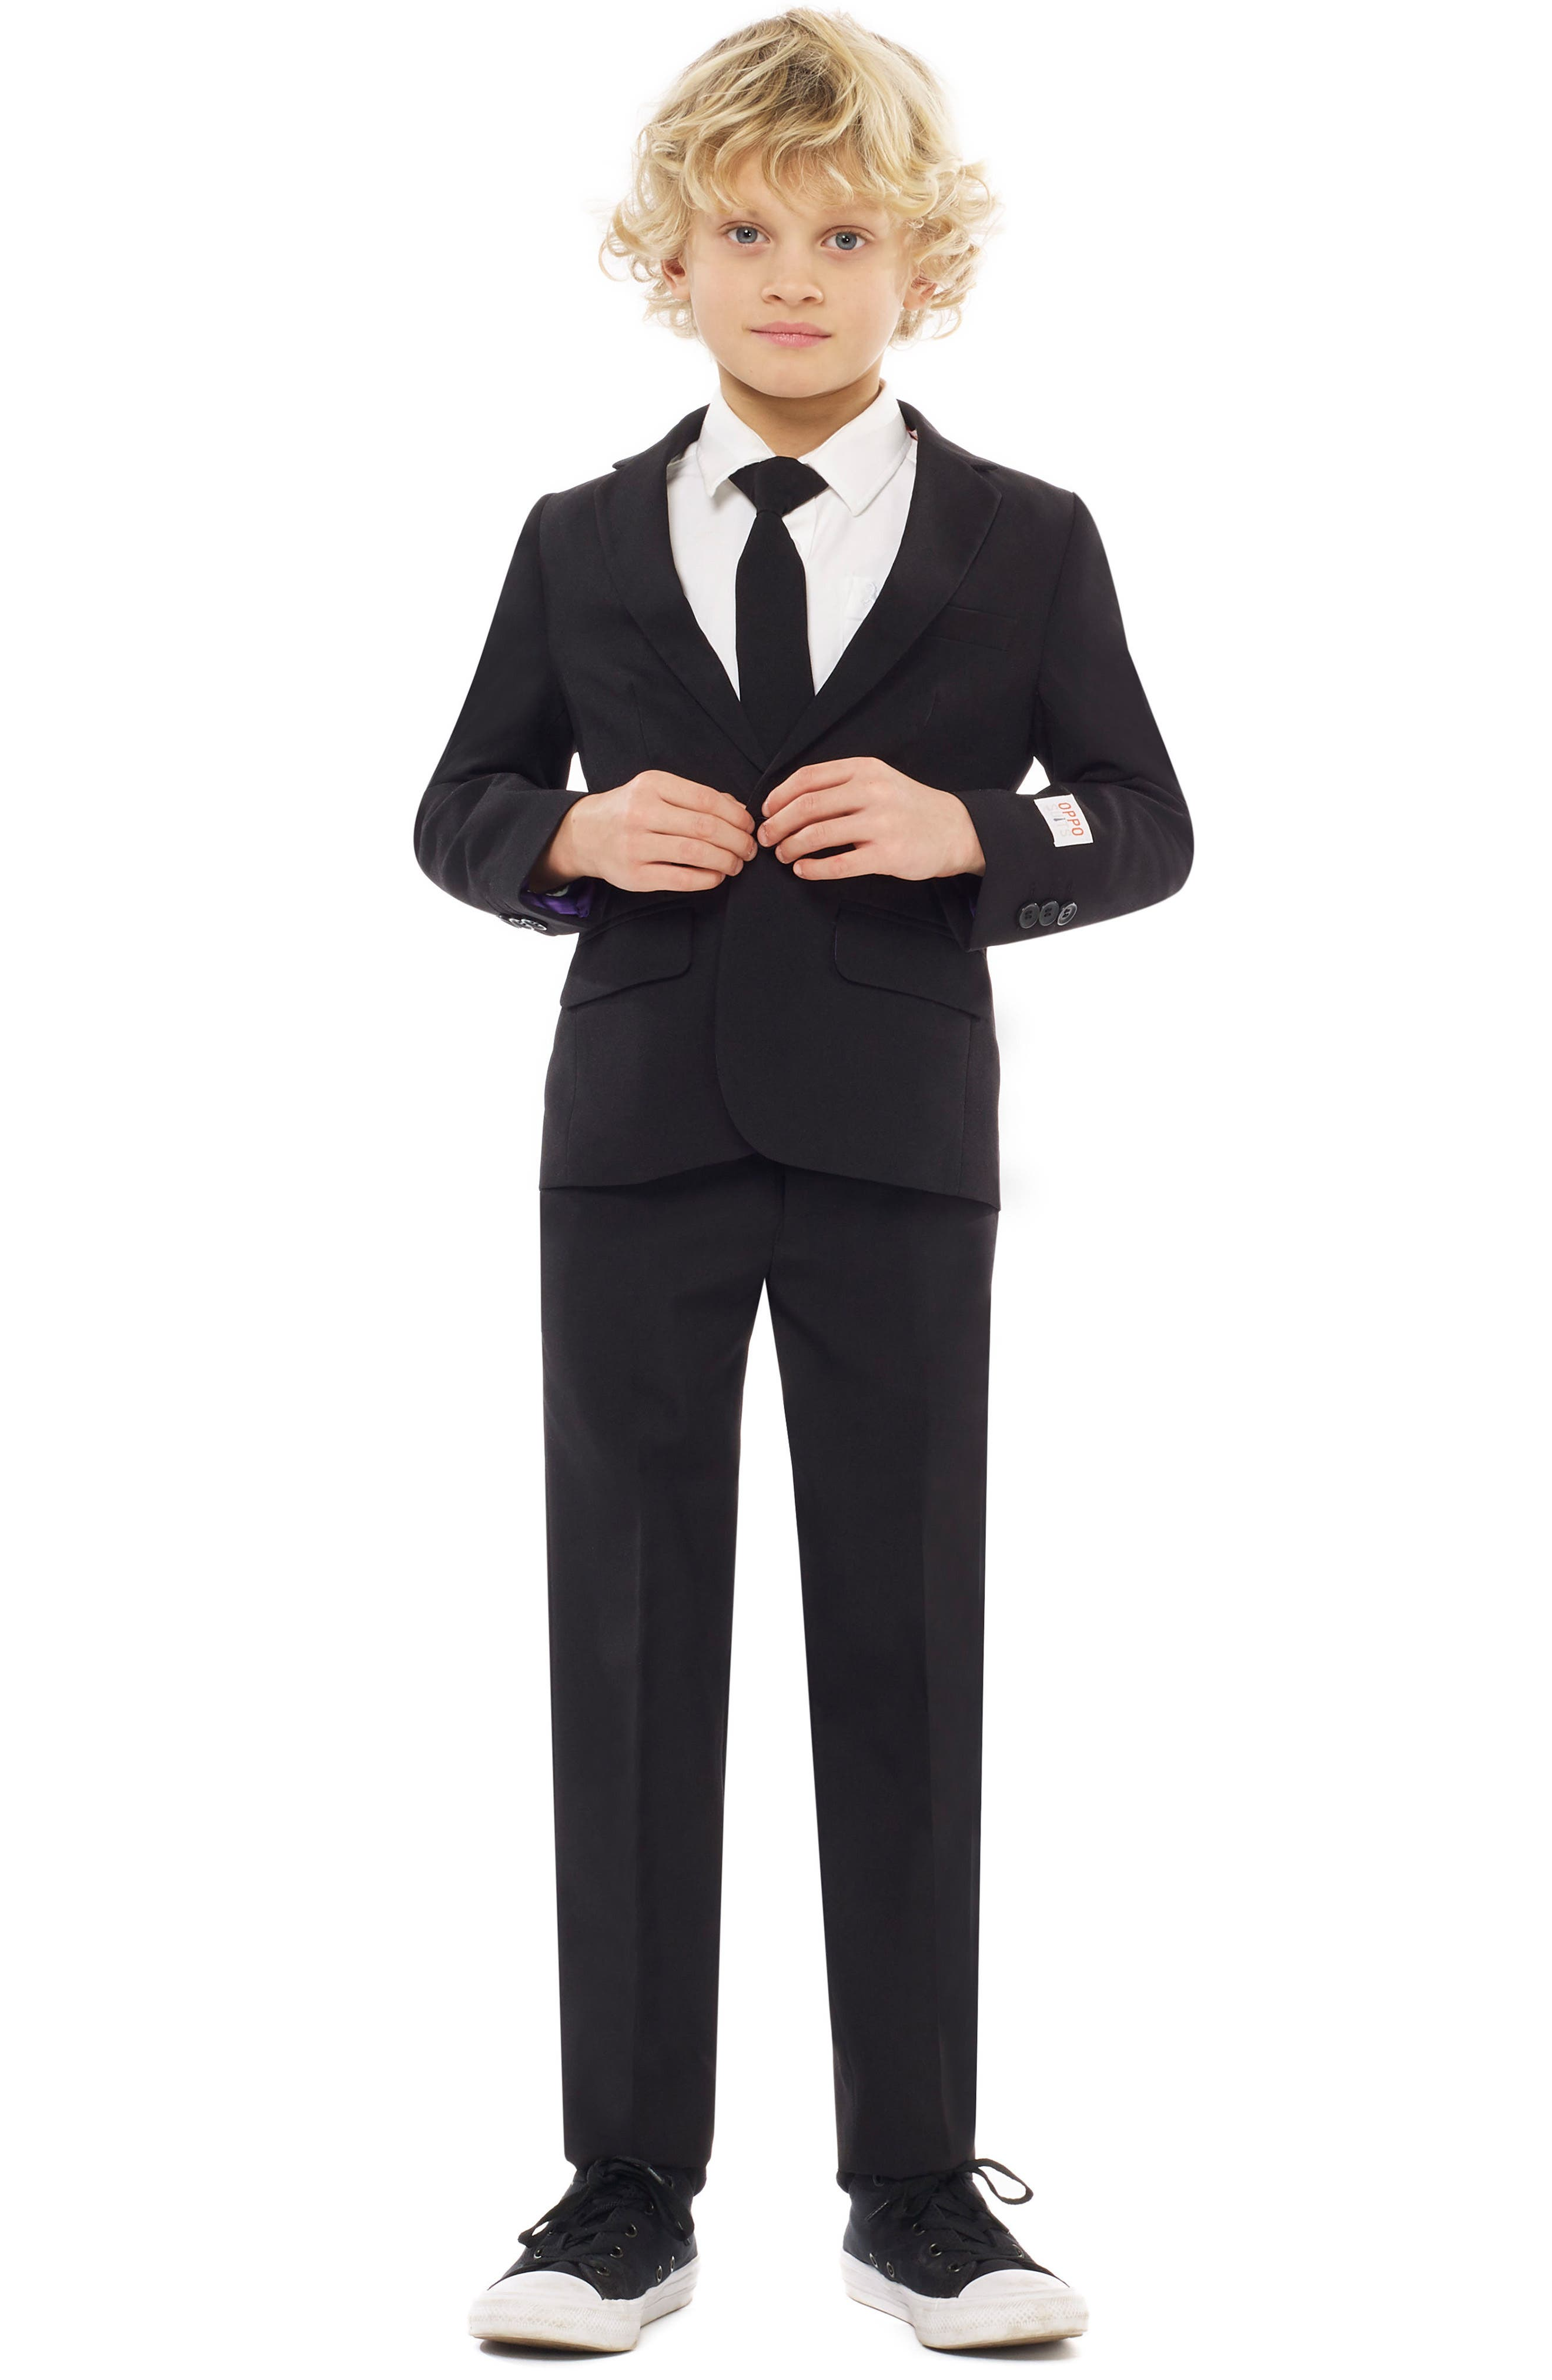 Knight Two-Piece Suit with Tie,                             Main thumbnail 1, color,                             BLACK